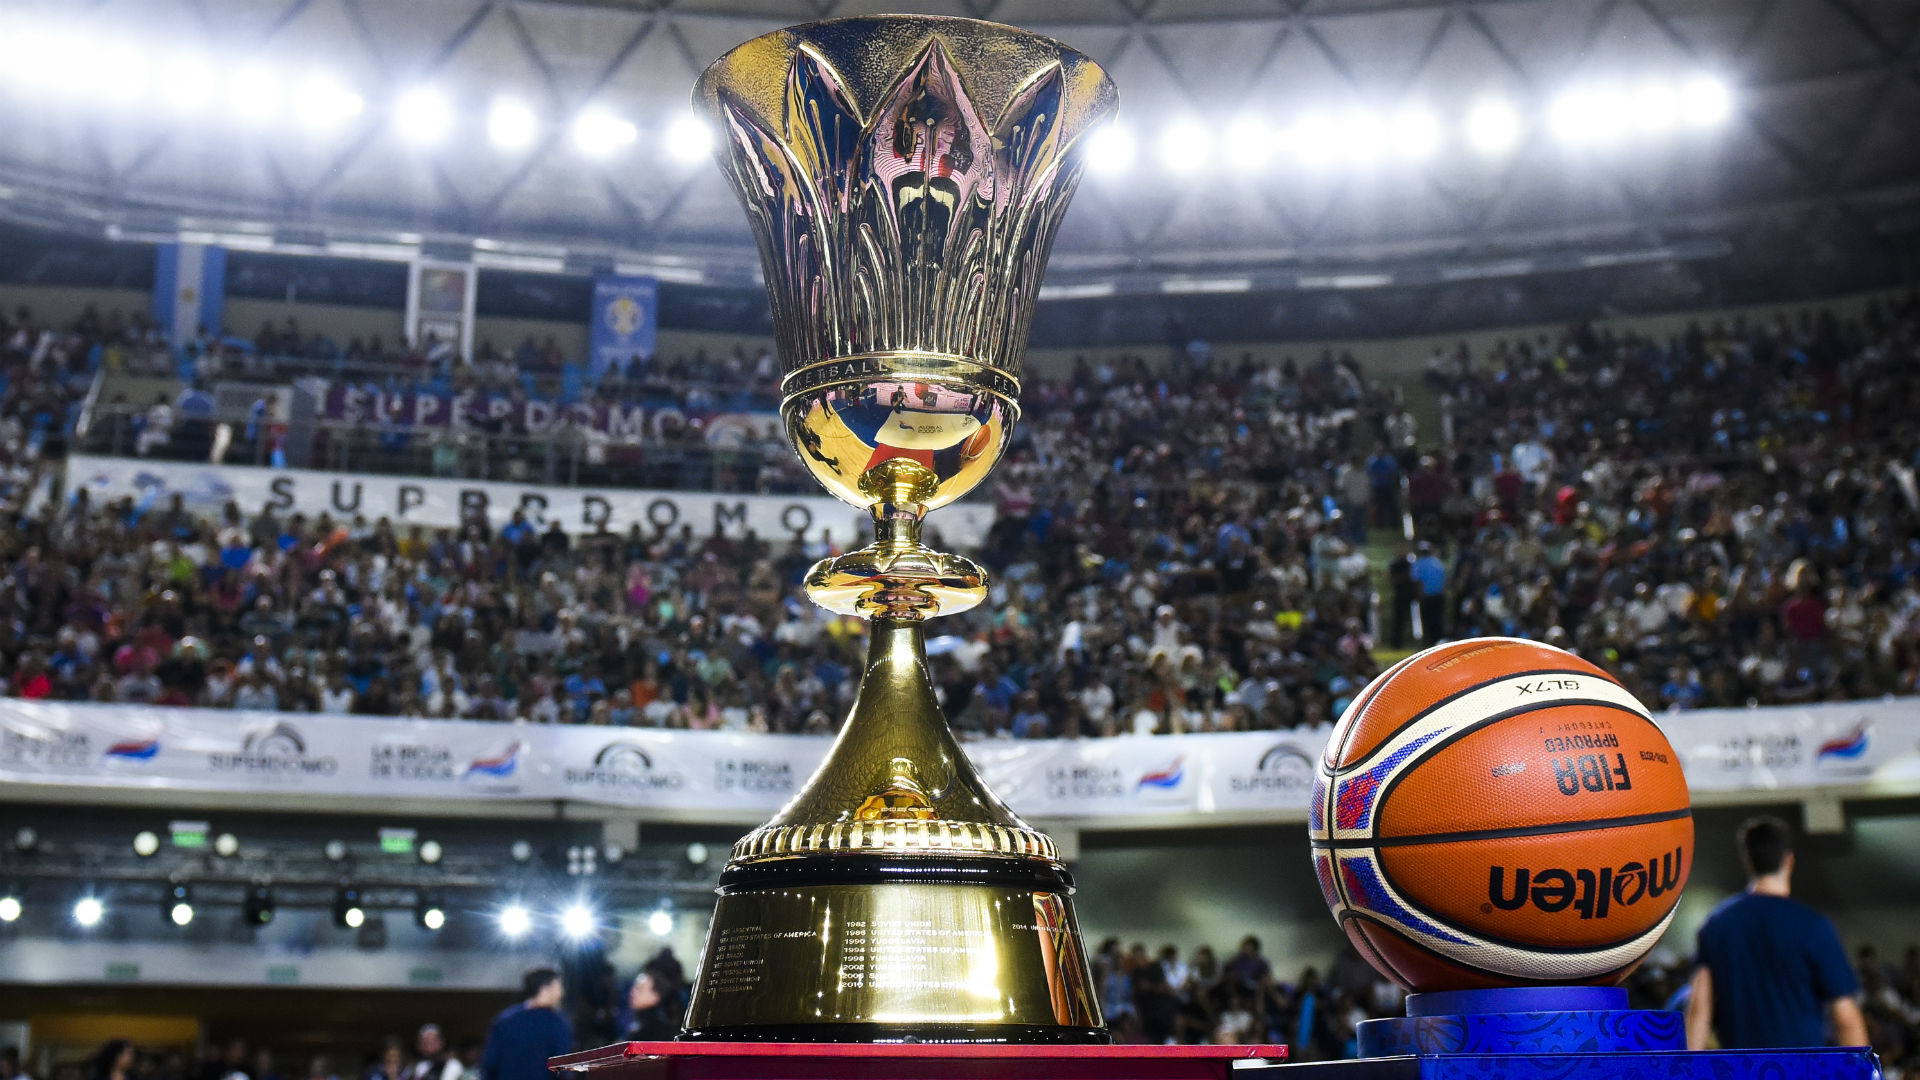 FIBA World Cup 2019: 5 storylines including Team USA three-peat, Boomers booming